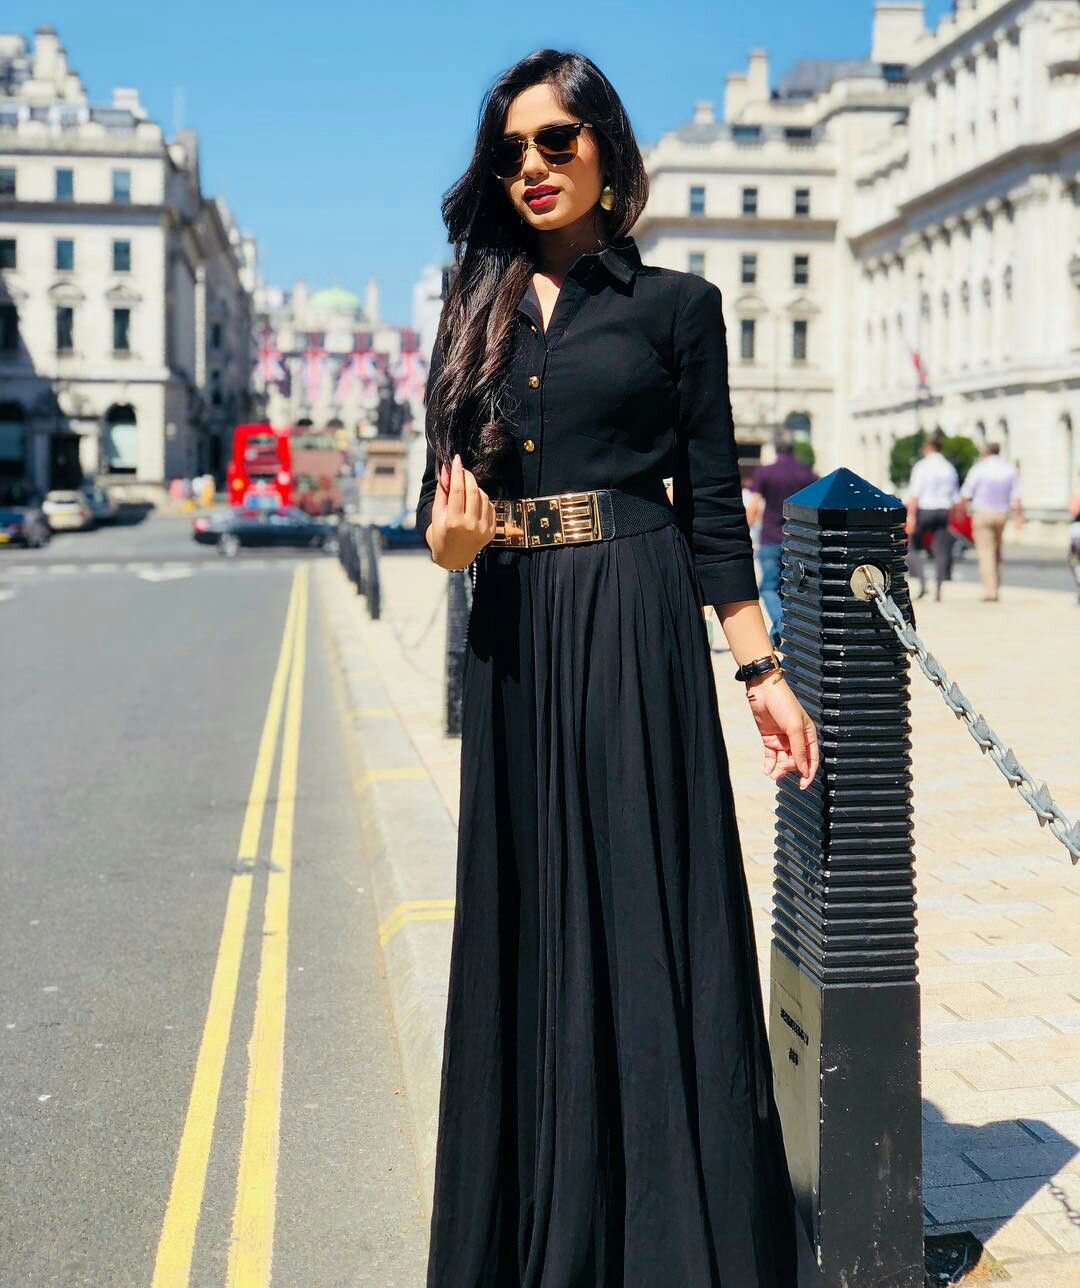 Pin By Sheen Fatima Rathore On T Celeⴊritⴤ Stylish Dresses Girl Fashion Outfits